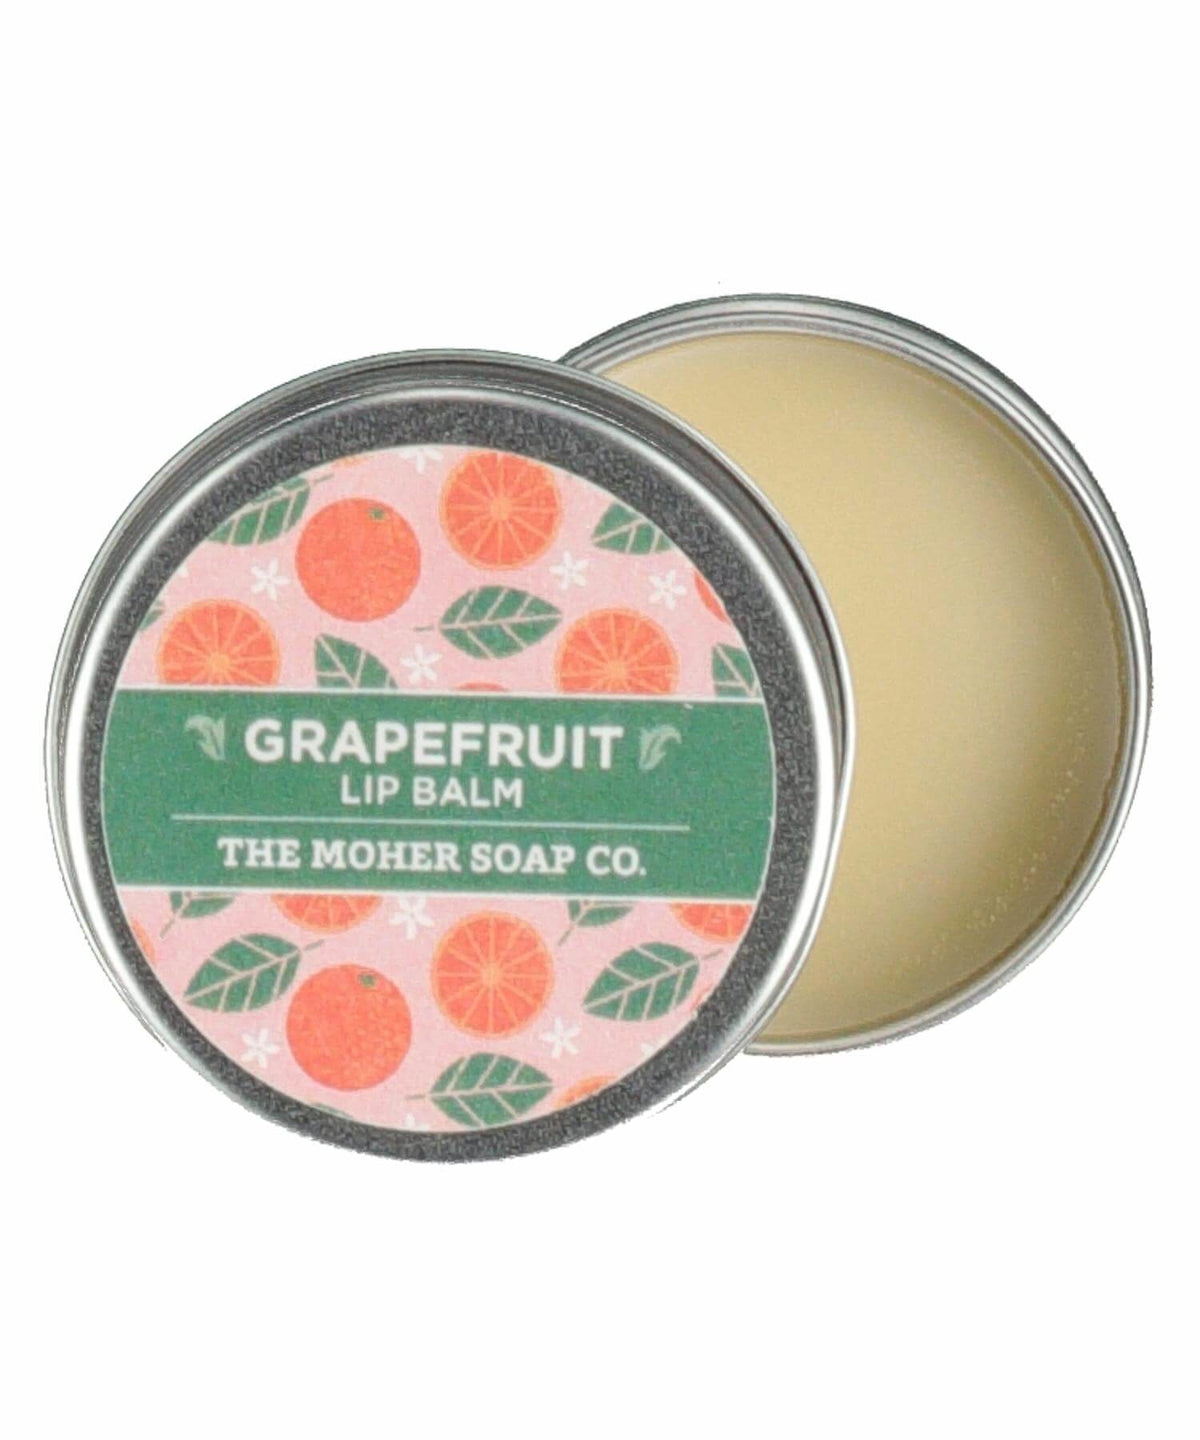 Lip Balm - Grapefruit - [The Moher Soap Co.] - Skincare & Beauty - Irish Gifts